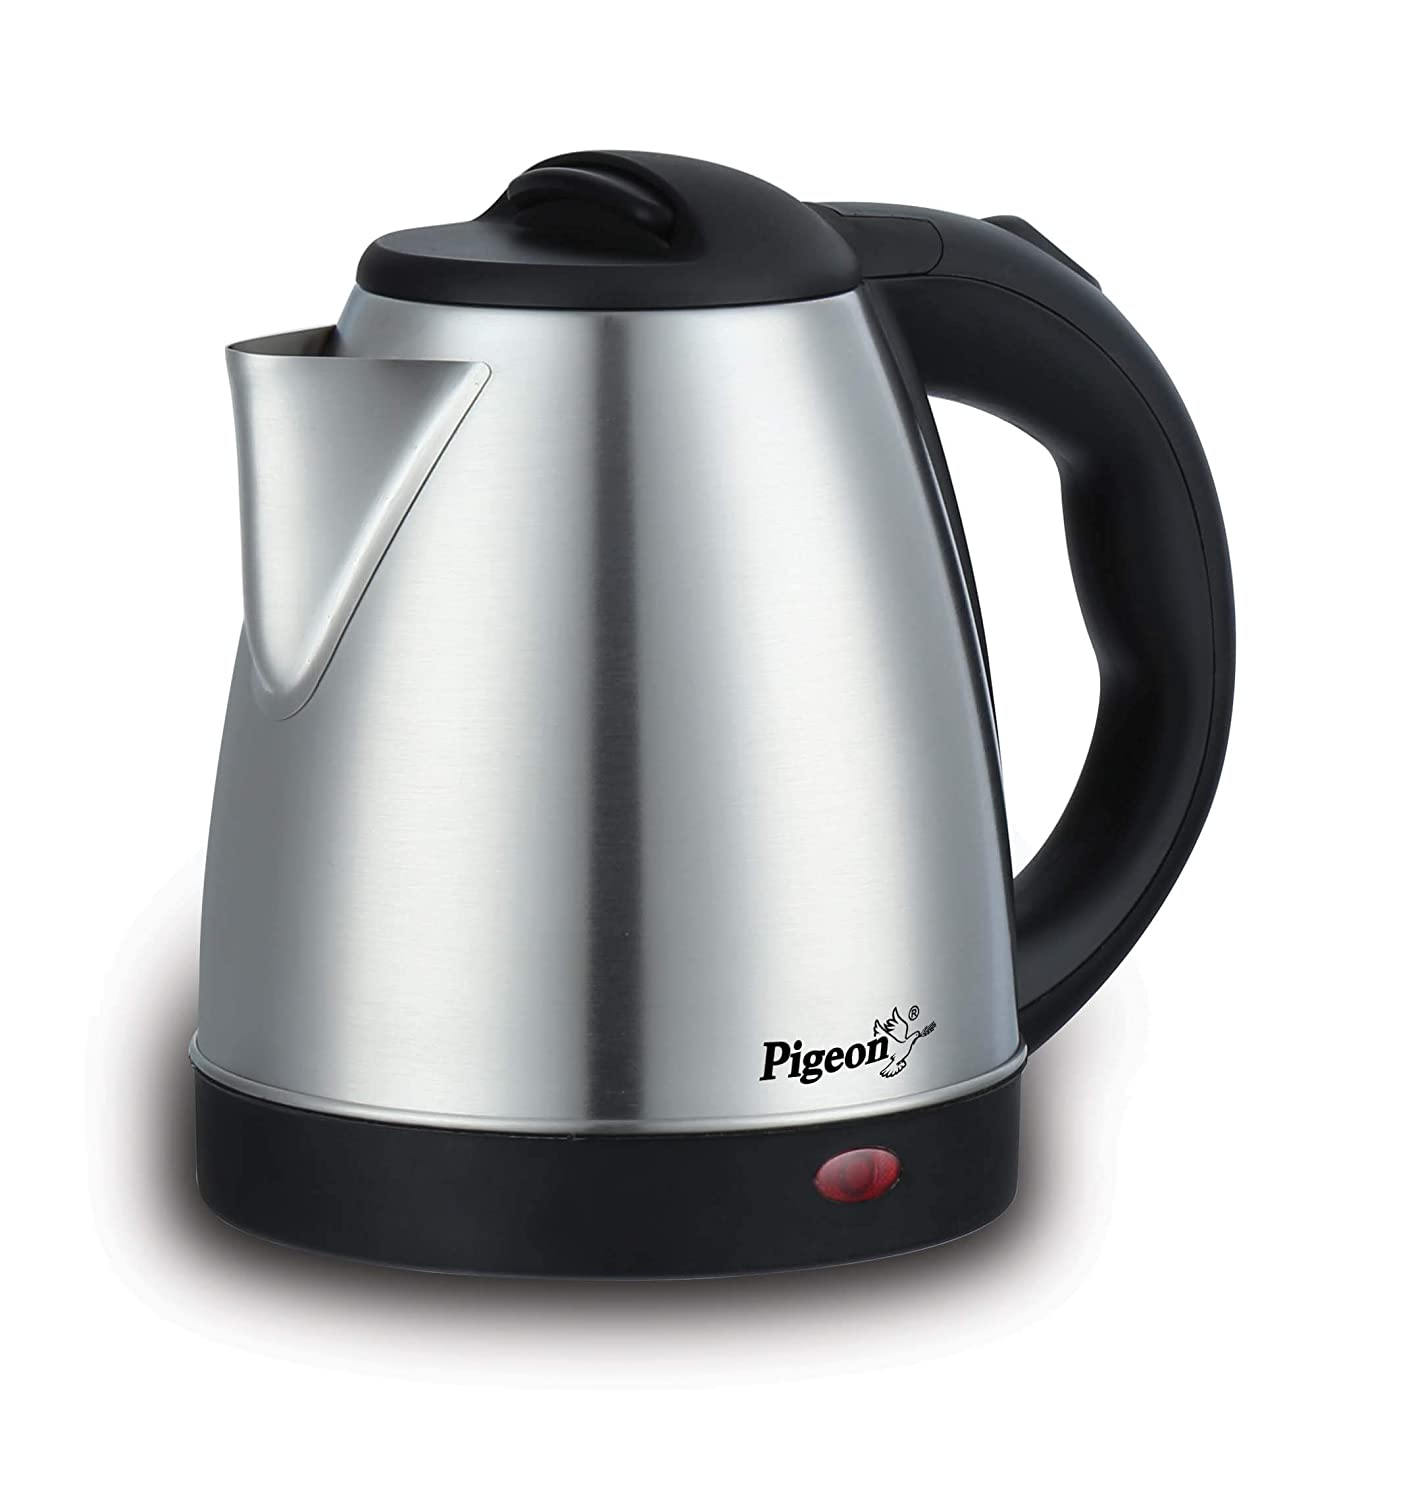 Buy Pigeon by Stovekraft 12466 1.5-Litre Electric Kettle (Multicolor) Online at Low Prices in India - Amazon.in